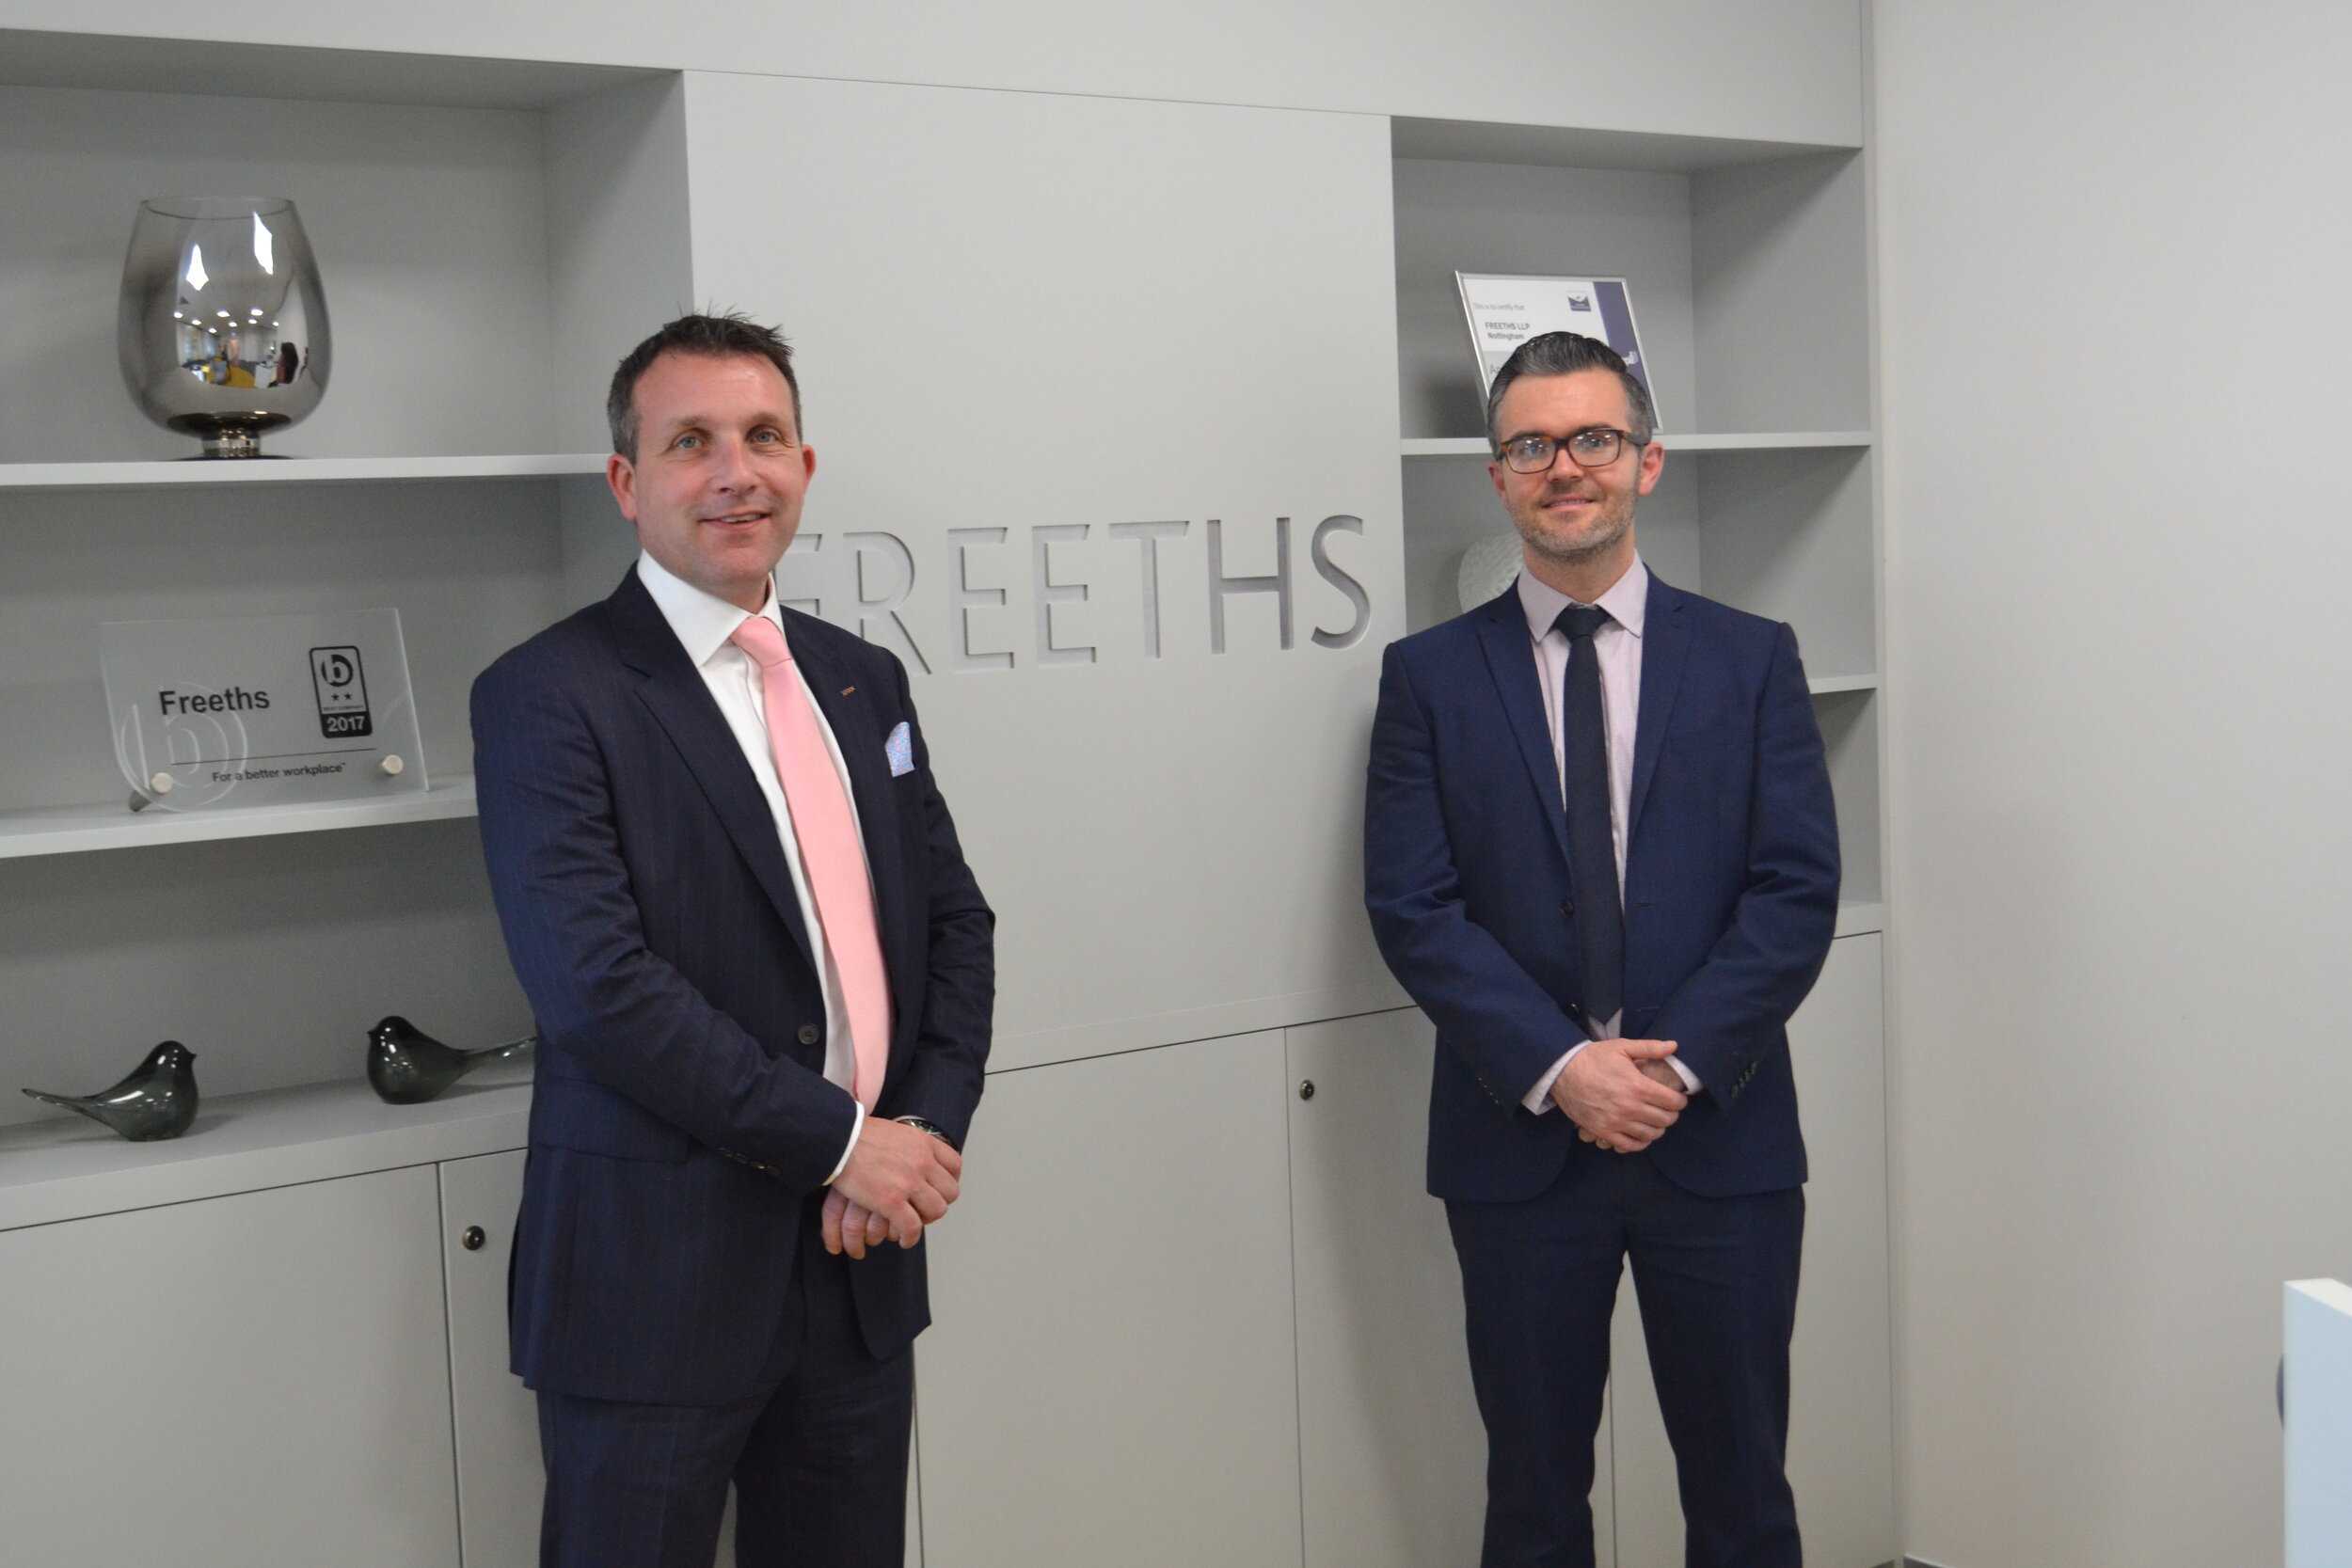 Andrew Nichol (left) and Luke Hopkins (right) from Freeths Solicitors